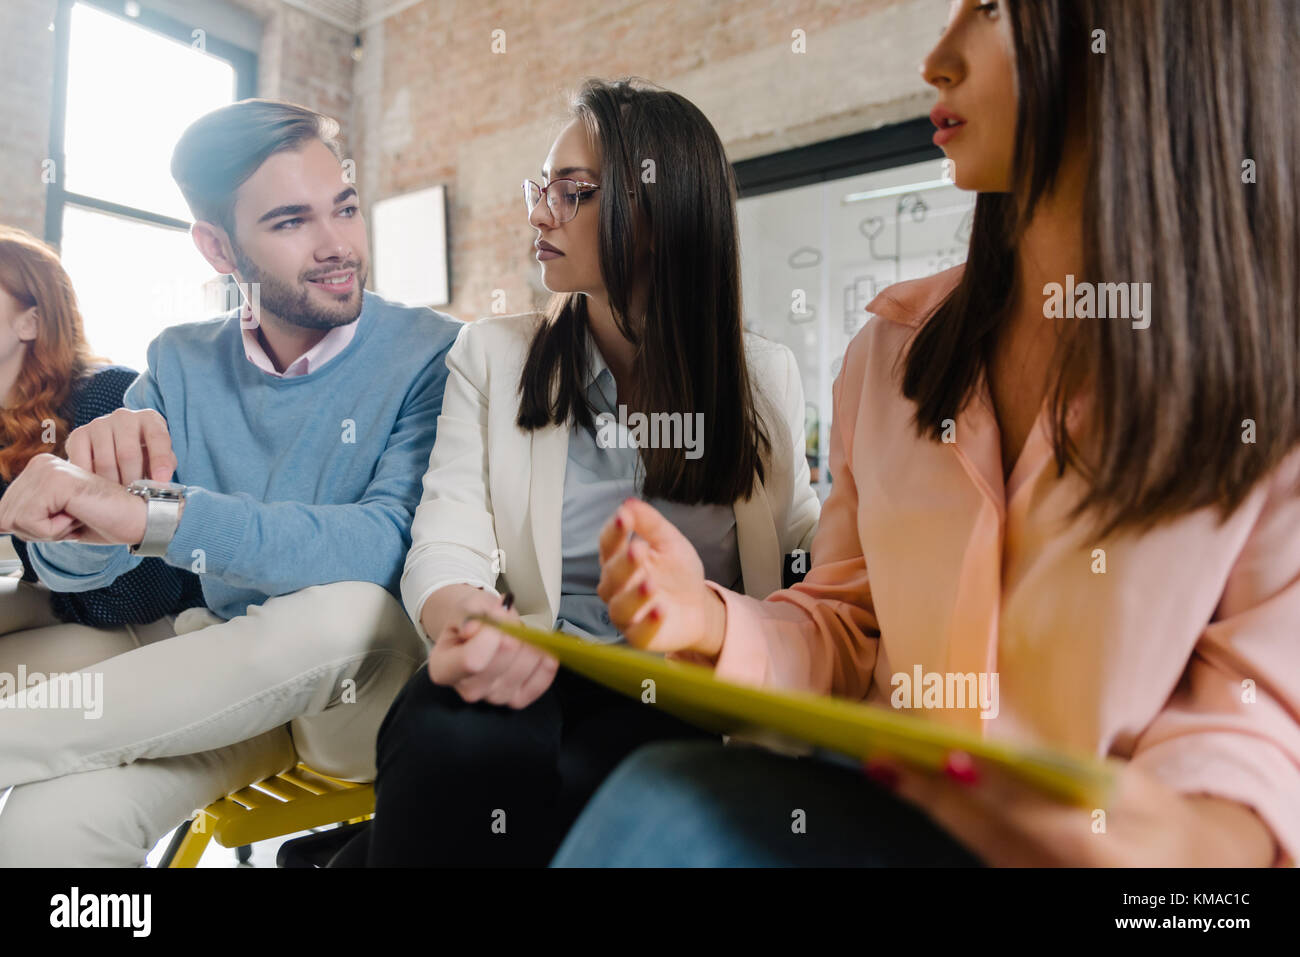 Time for the job interview - Stock Image